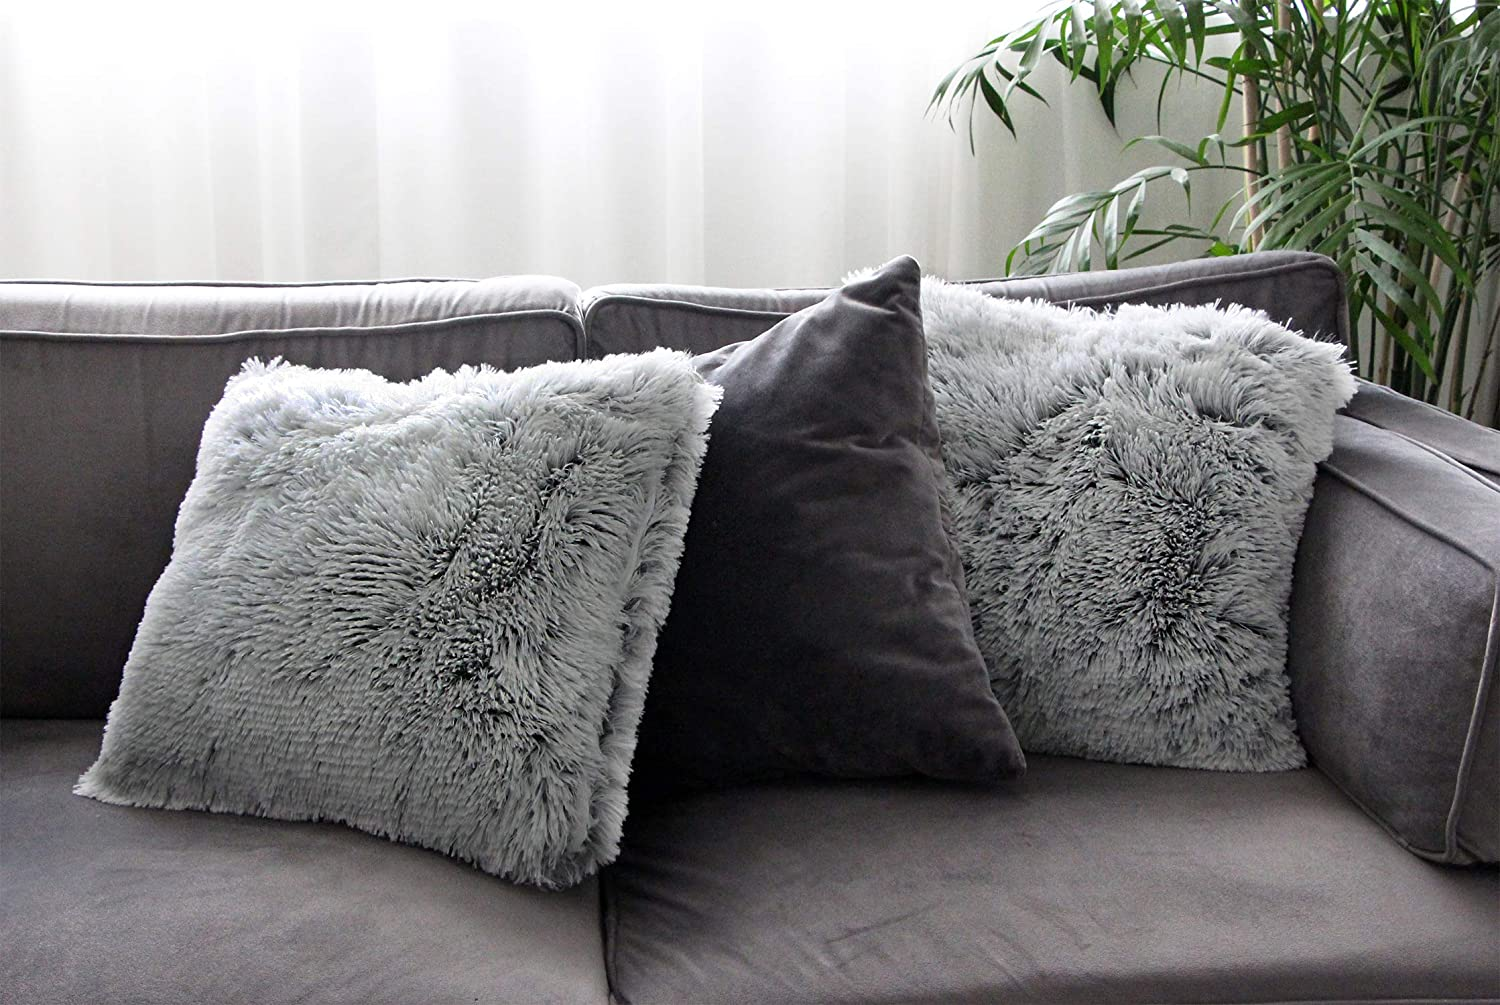 Uhomy Single Pack Home Decorative Super Soft Luxury Series Plush Faux Fur Throw Pillow Cover Cushion Case for Sofa//Bed White 30x50 cm 12 20